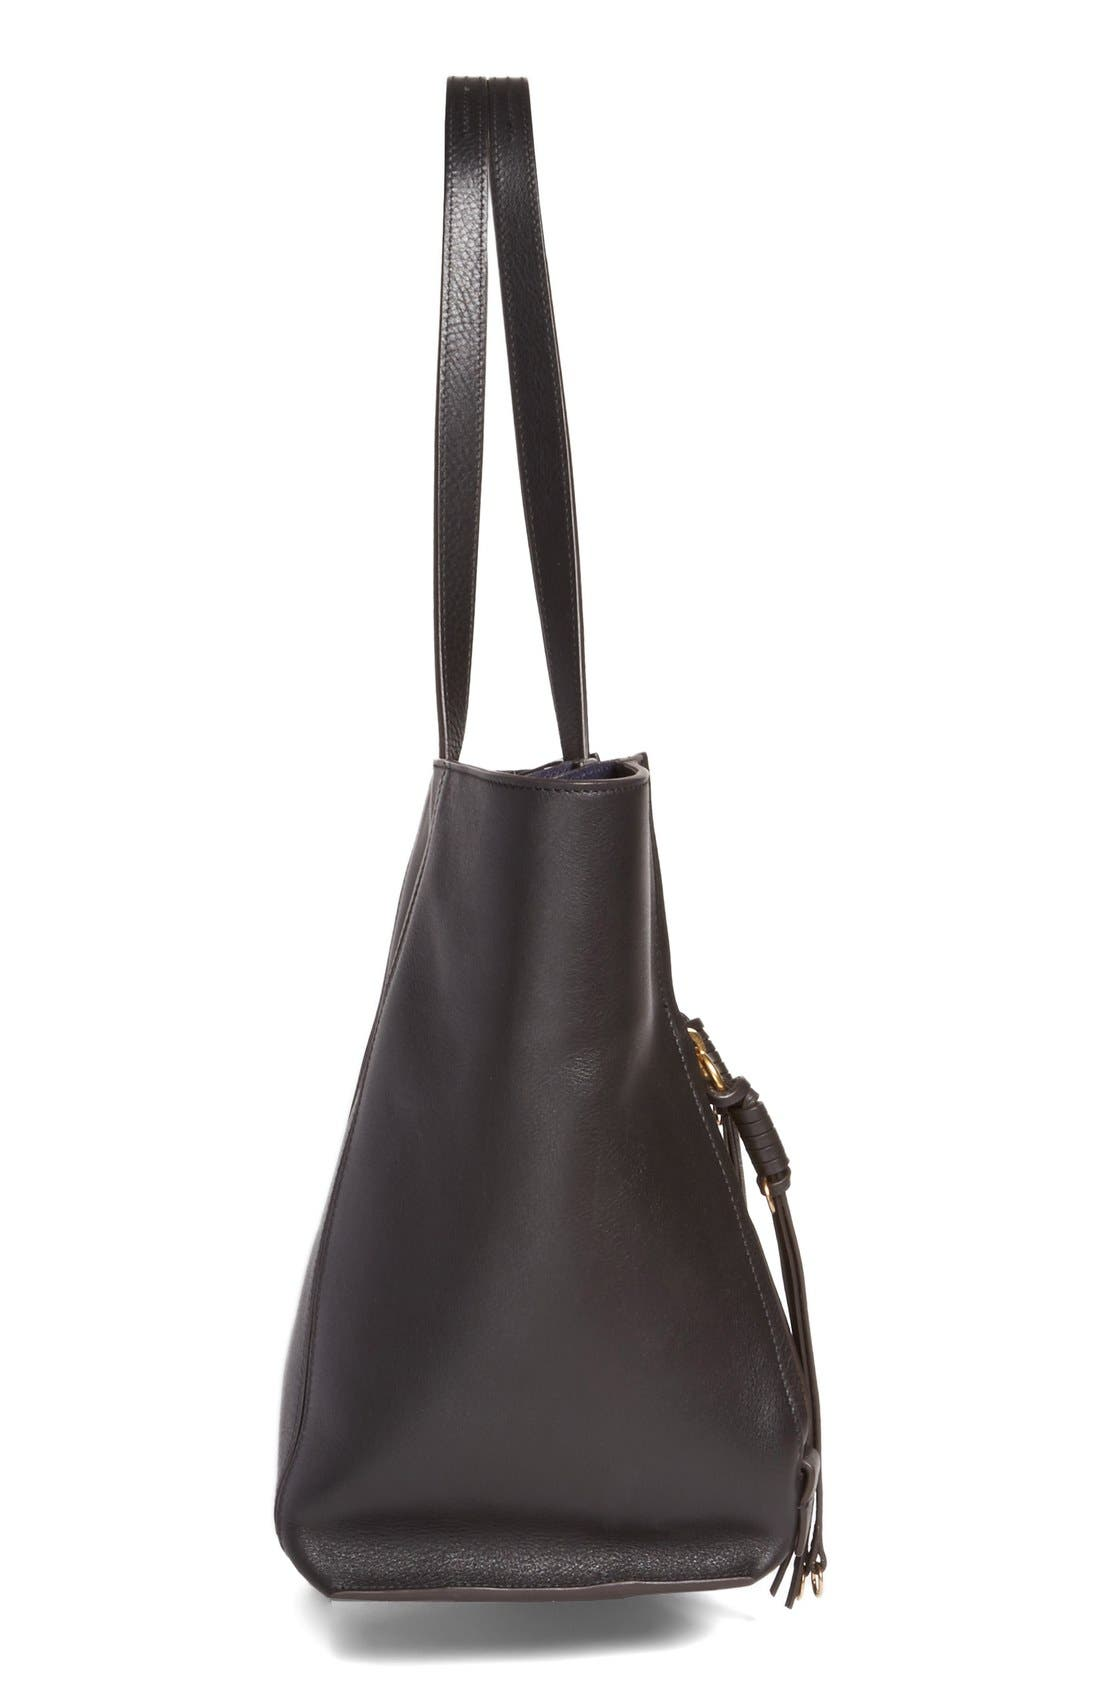 Medium Milo Calfskin Leather Tote,                             Alternate thumbnail 4, color,                             BLACK